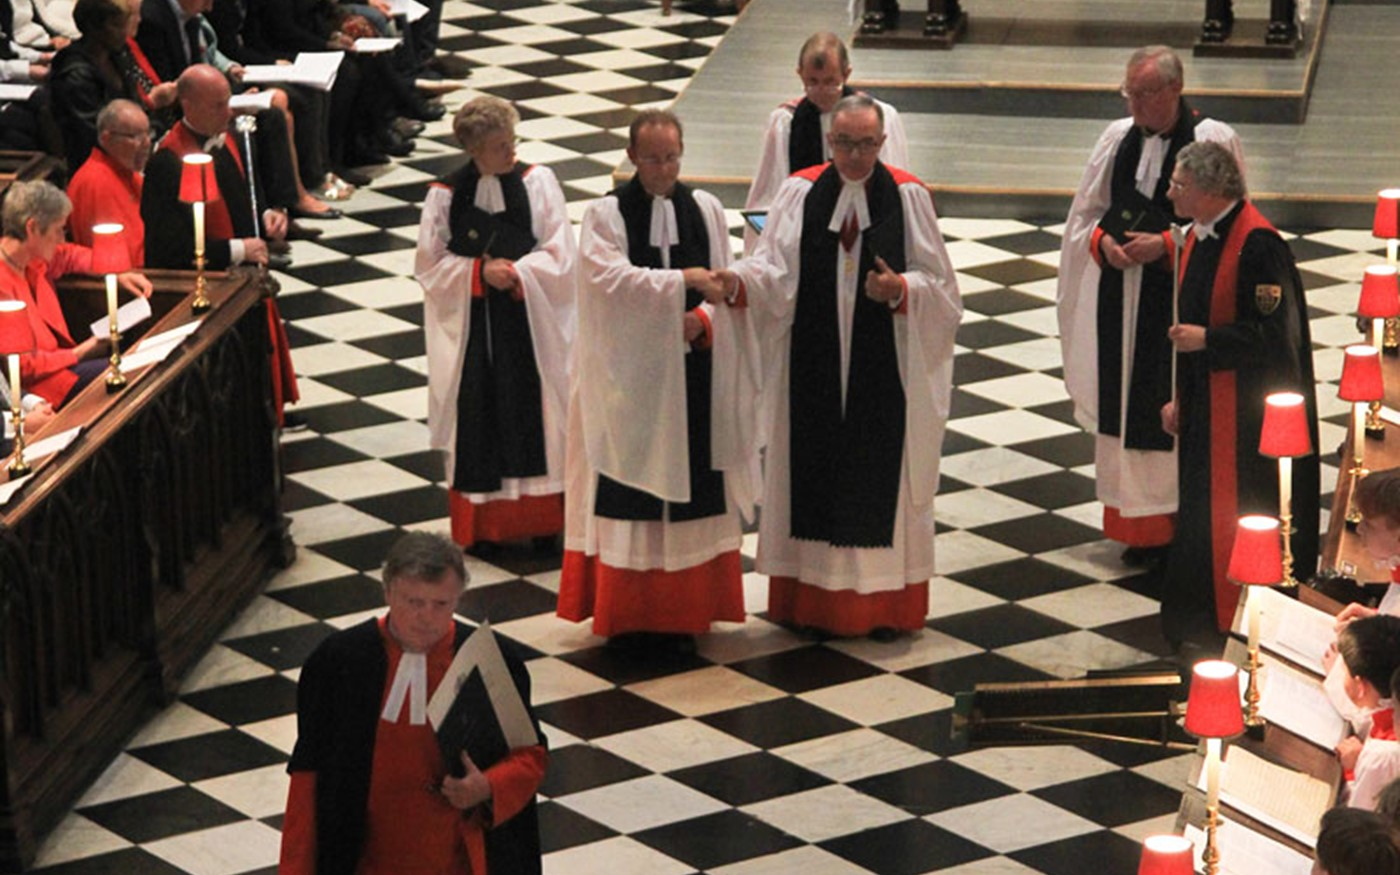 Canon Ball is led to his vacant stall in the Quire of the Abbey Church by the Dean of Westminster, the Very Reverend Dr John Hall